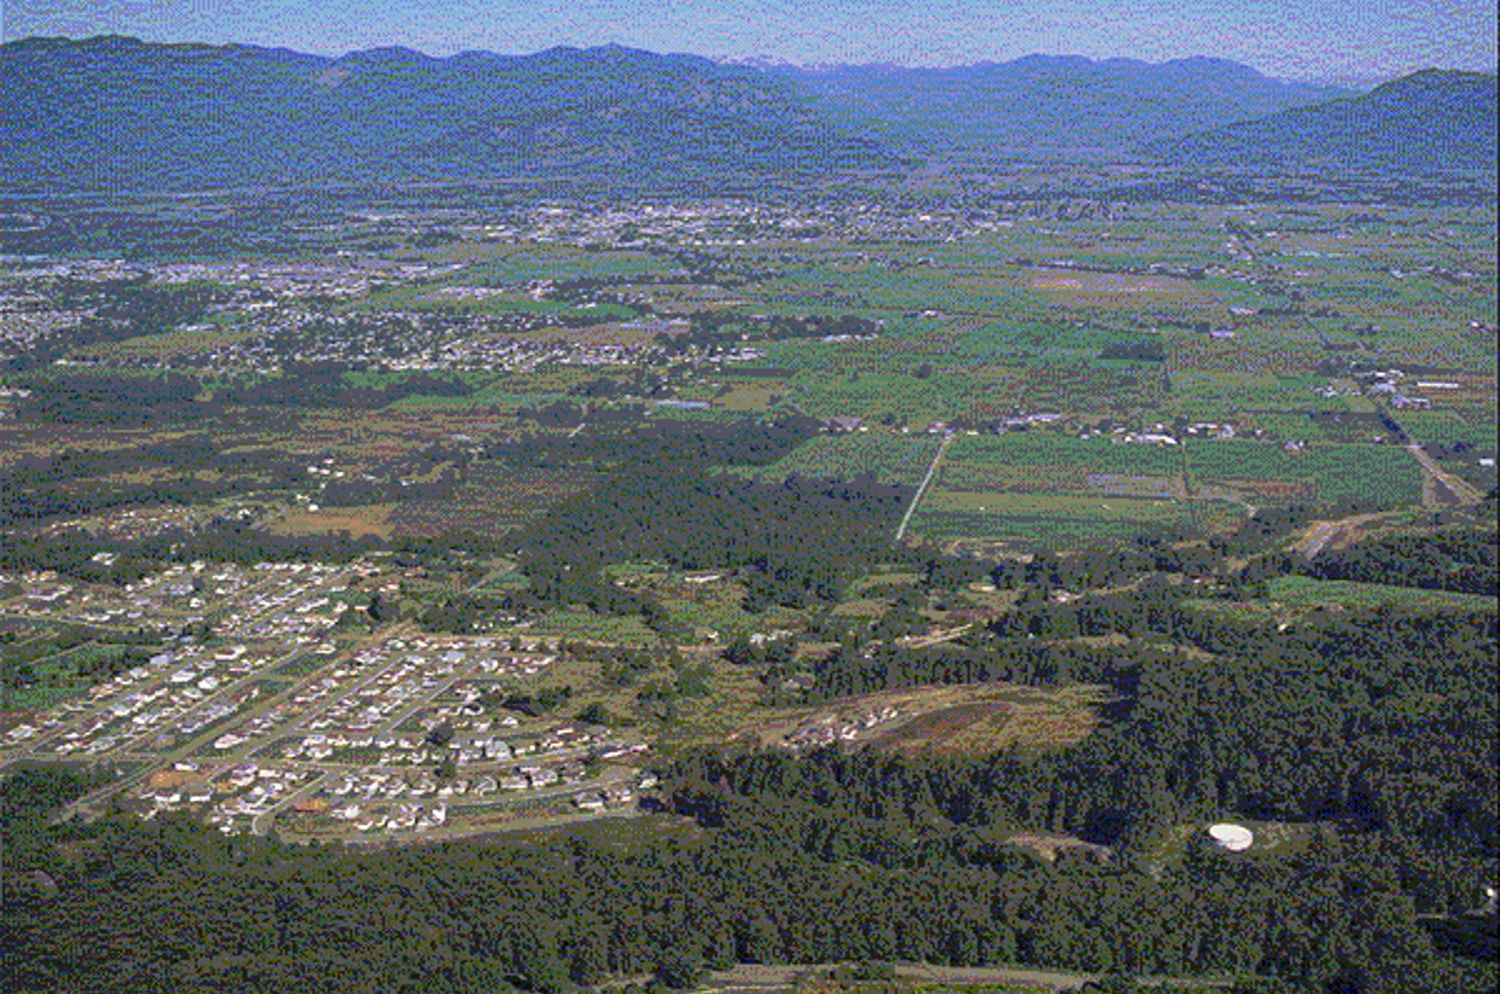 Looking down at the lowlands in the City of Chilliwack